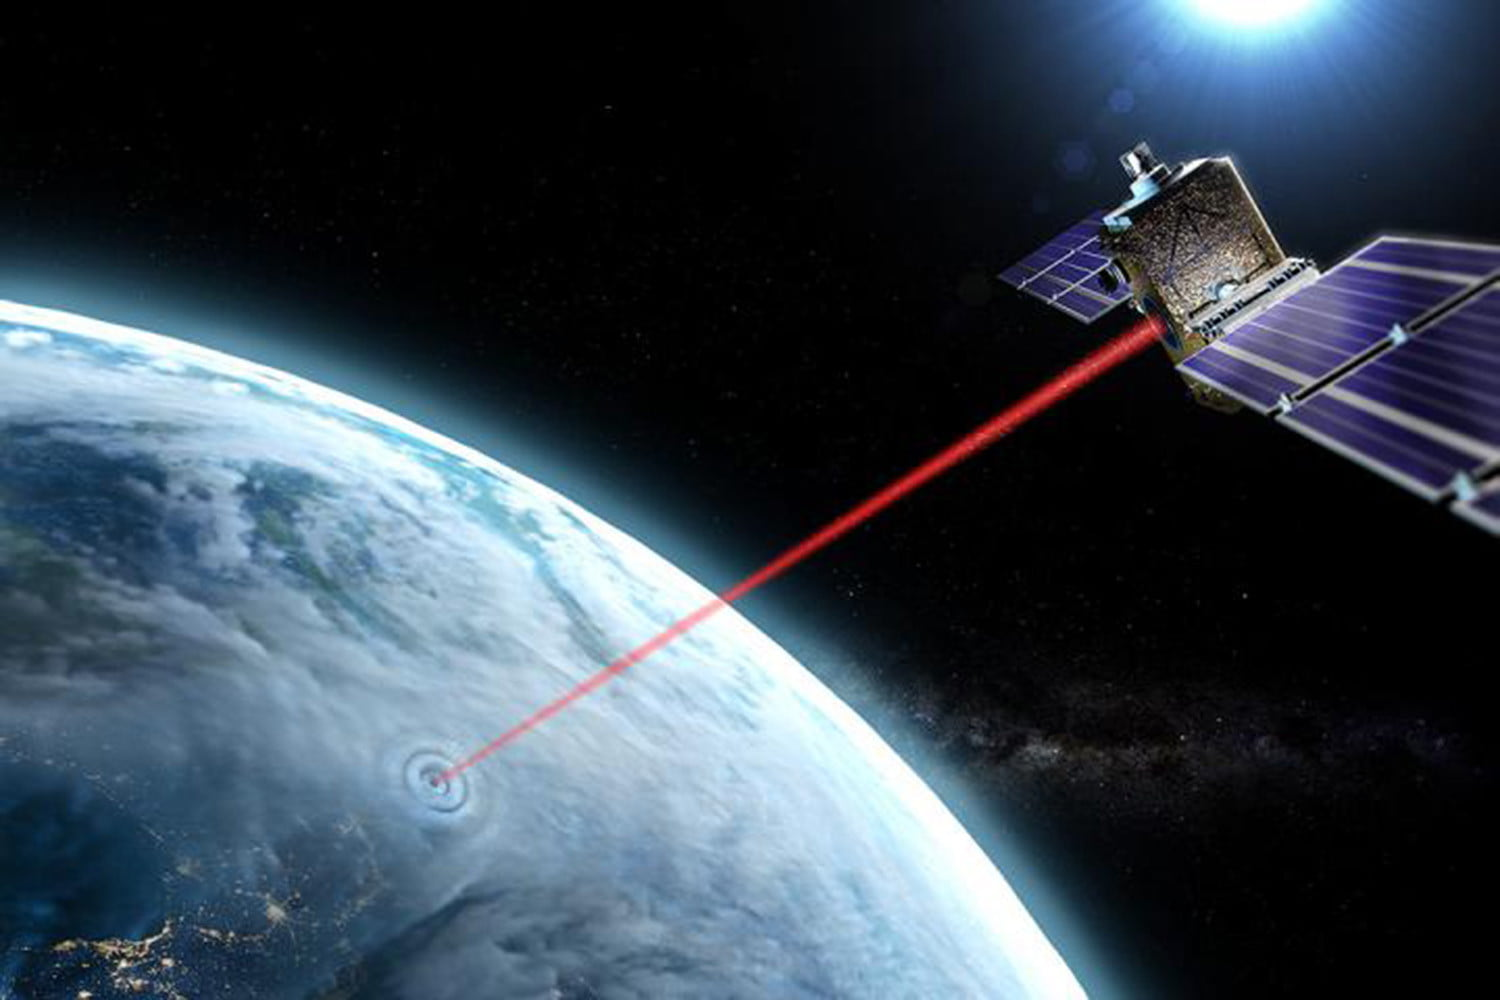 Scientists want to bore holes through clouds using lasers from satellites